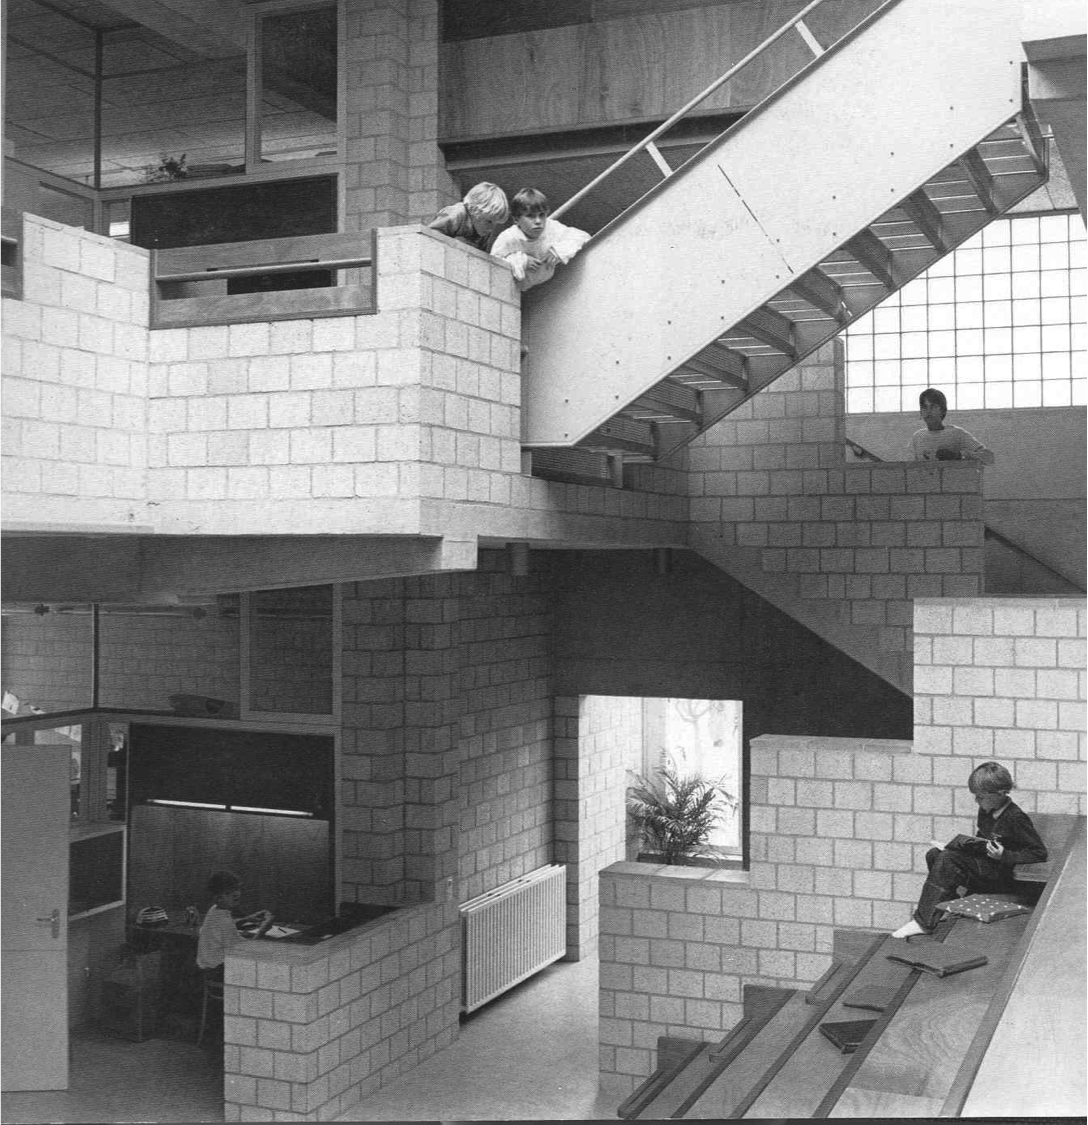 Details Apollo School Herman Hertzberger Amsterdam 1981